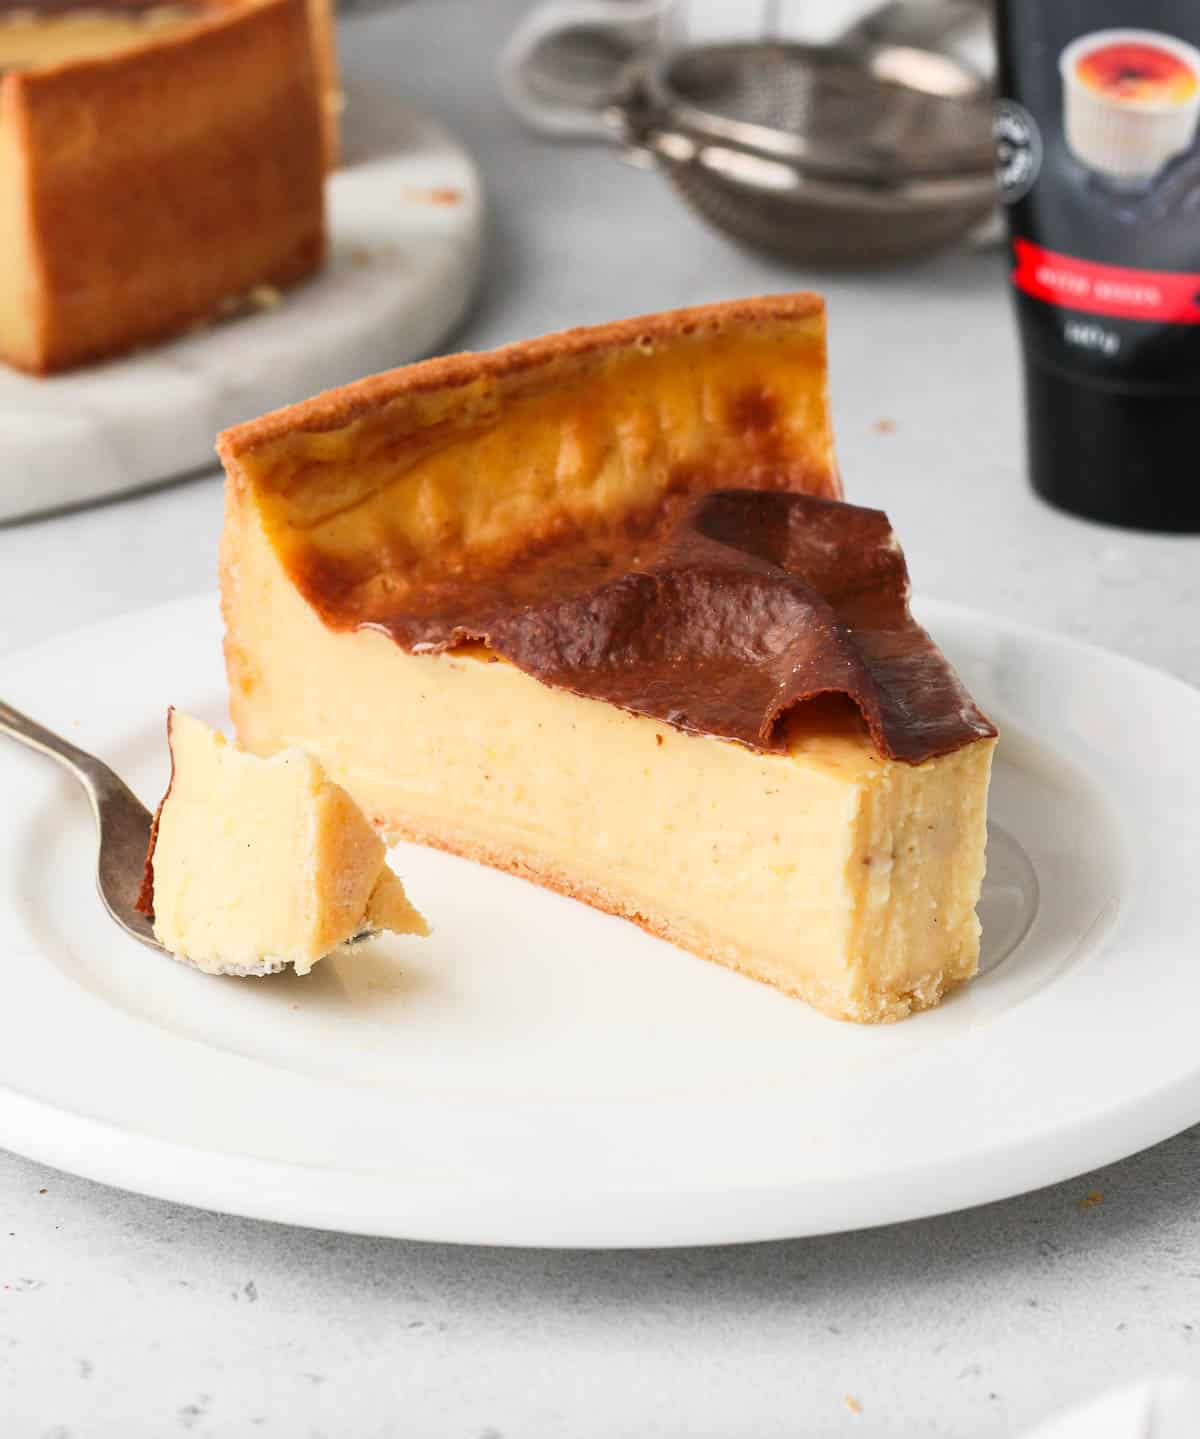 One slice of flan patissier on a white plate.